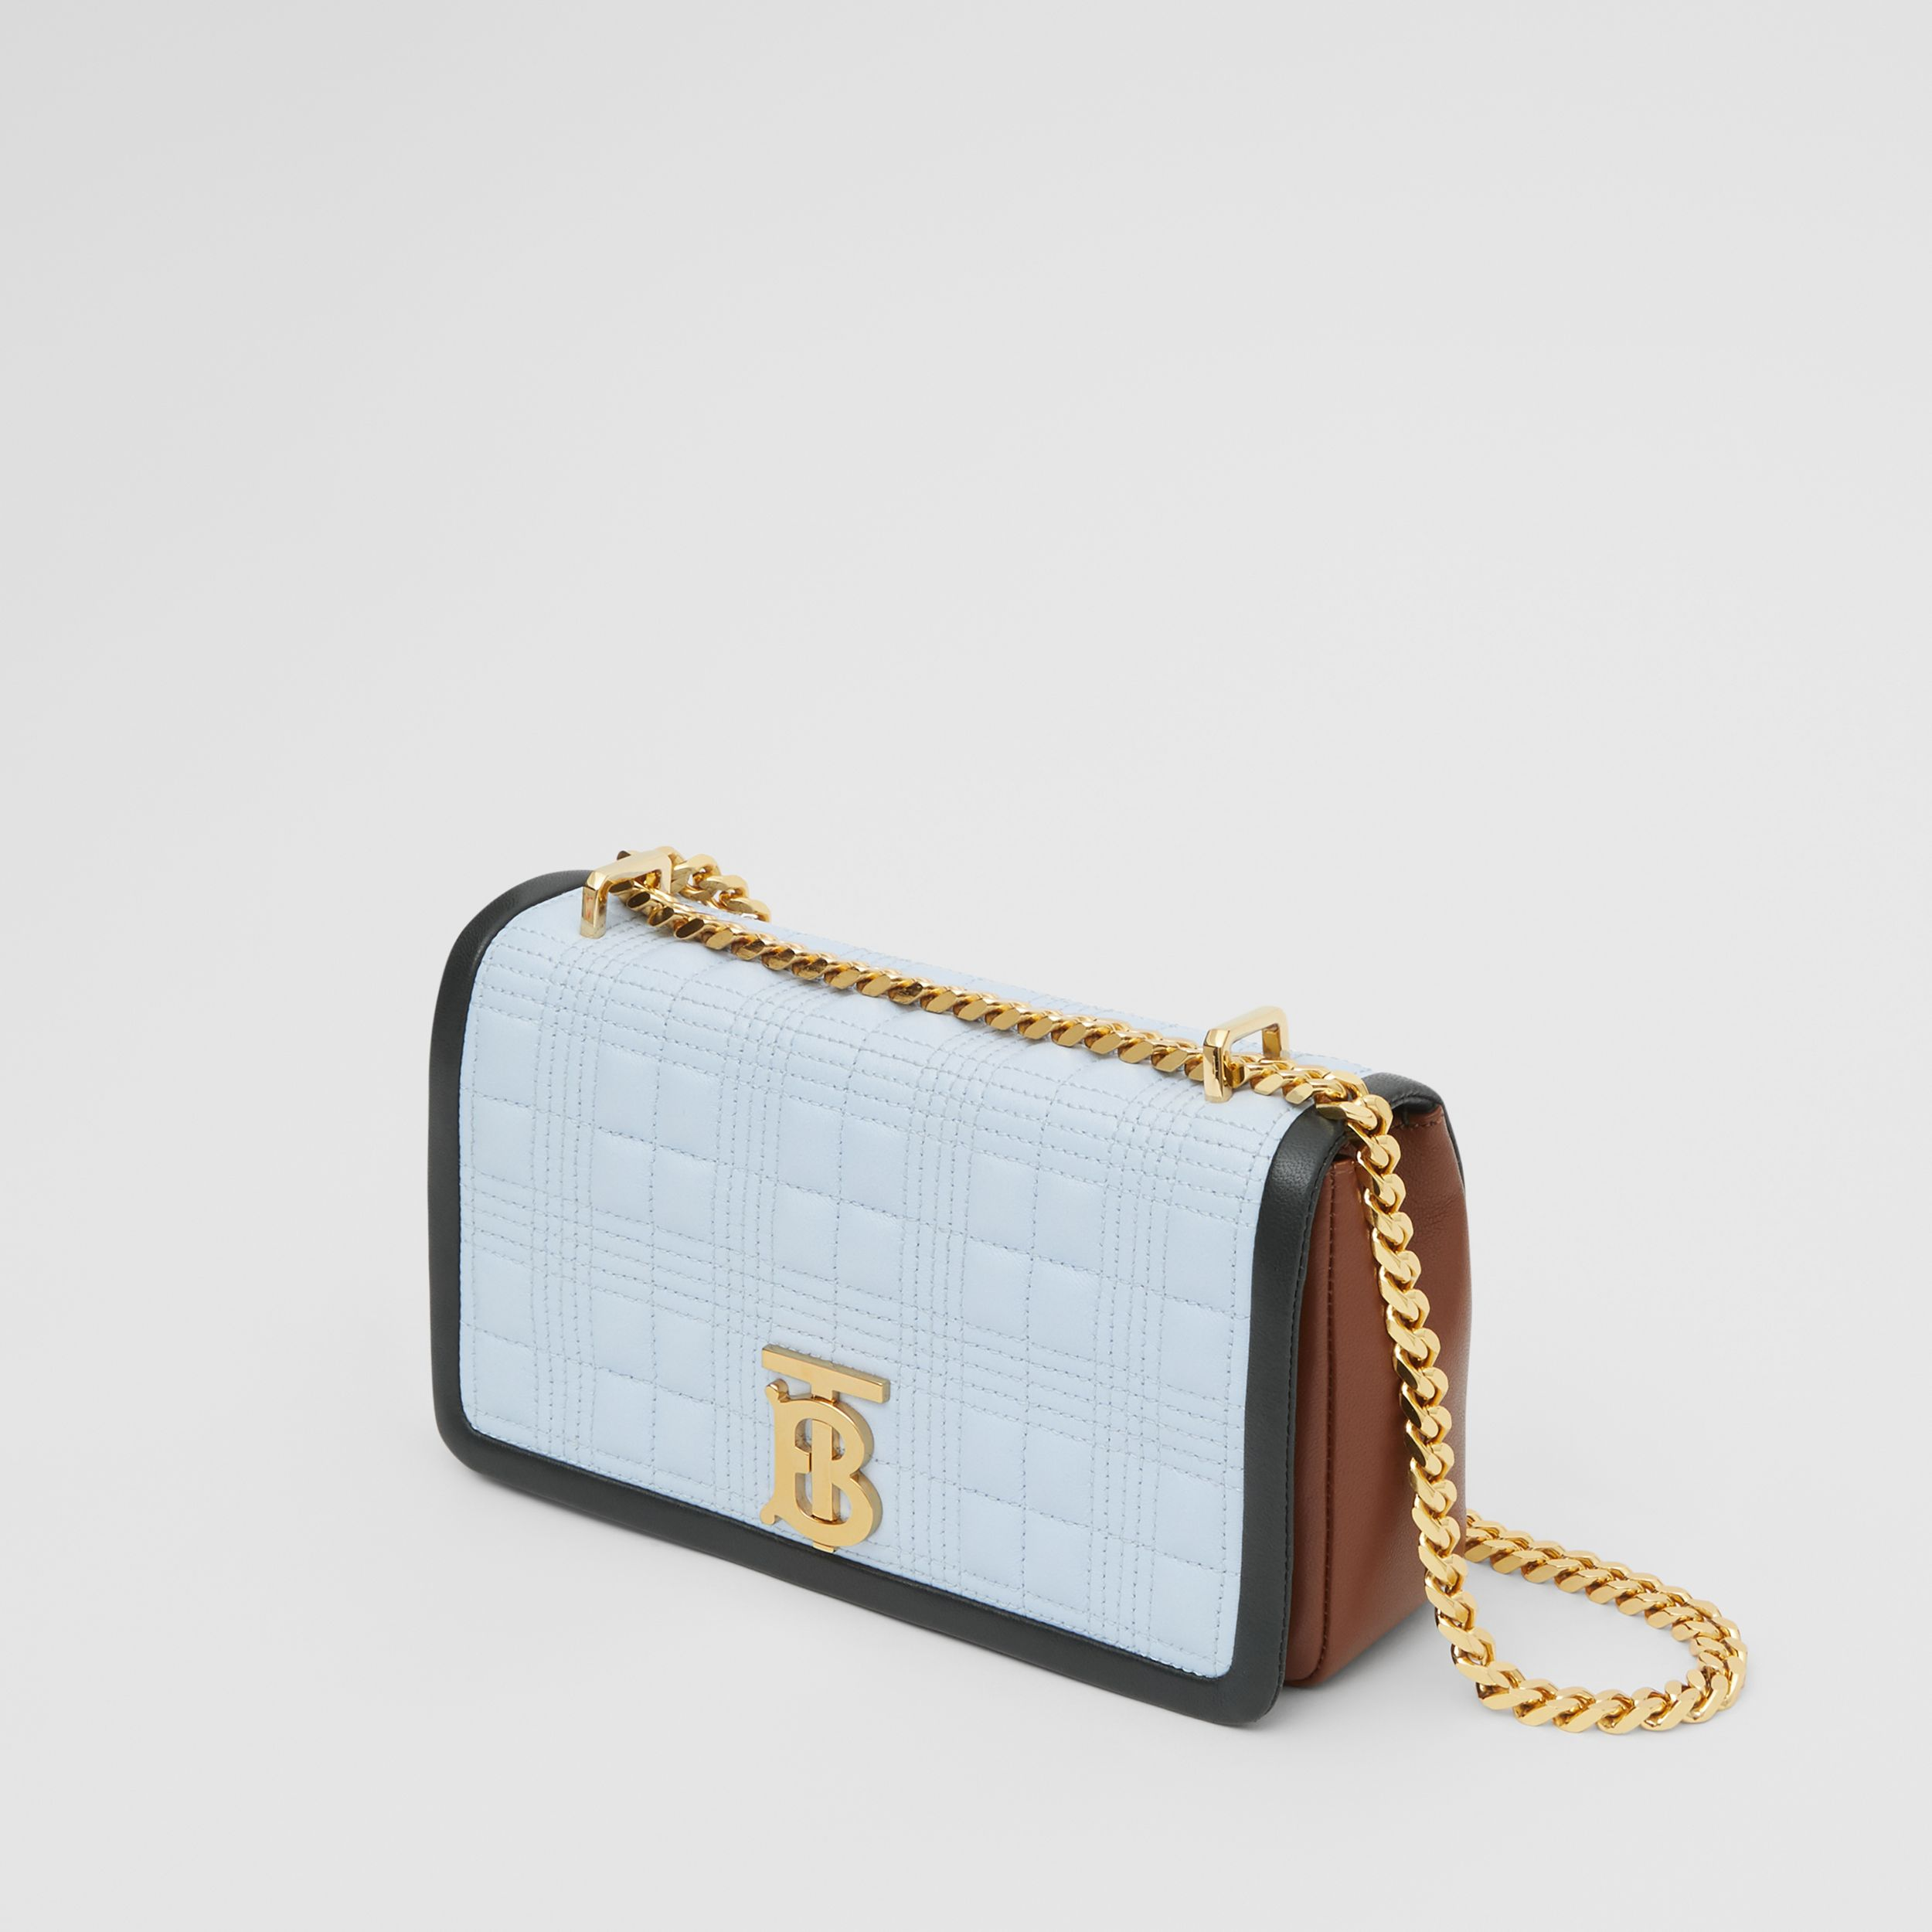 Small Quilted Tri-tone Lambskin Lola Bag in Pale Blue/dark Pine - Women | Burberry - 4